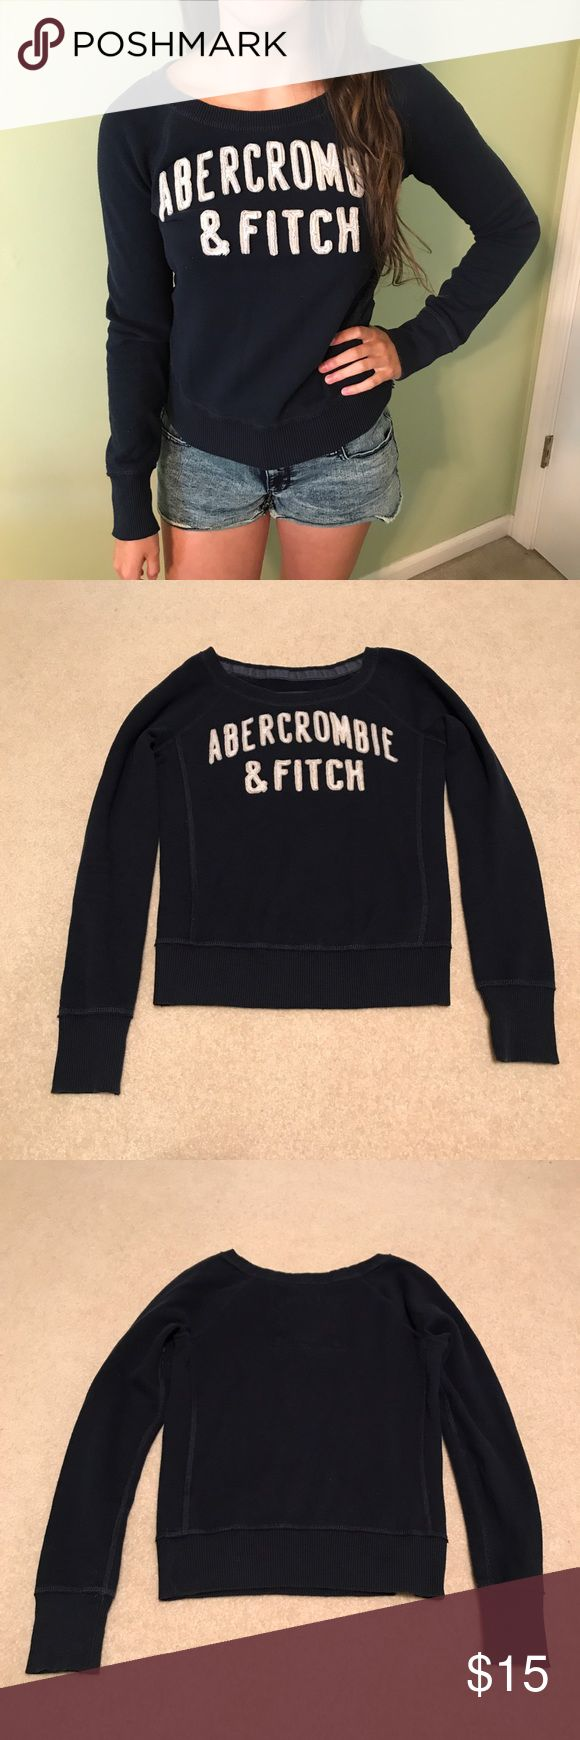 Abercrombie and Fitch Crewneck Sweatshirt Size S Abercrombie and Fitch navy crewneck sweatshirt size S. Light signs of wear but in great condition. Perfect with leggings or jeans! Abercrombie & Fitch Sweaters Crew & Scoop Necks